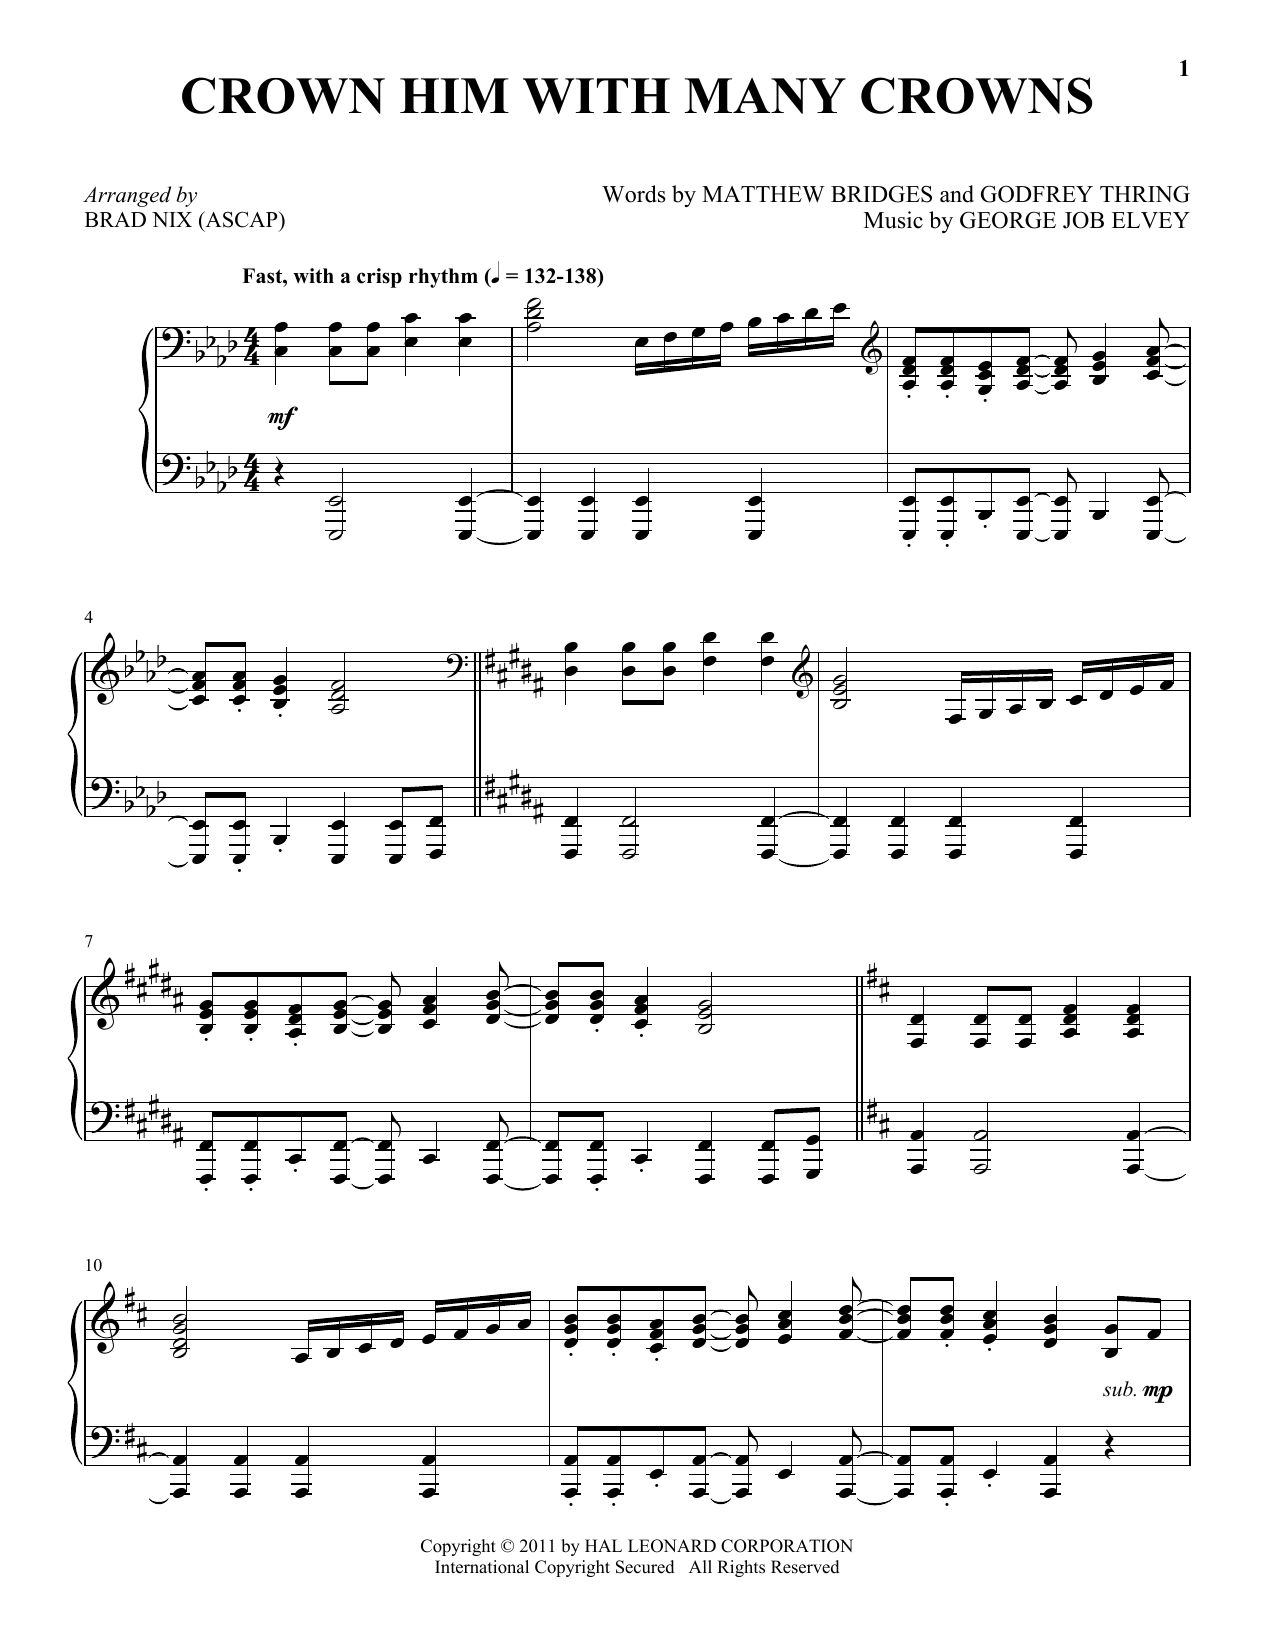 Crown Him With Many Crowns sheet music for piano solo by Godfrey Thring